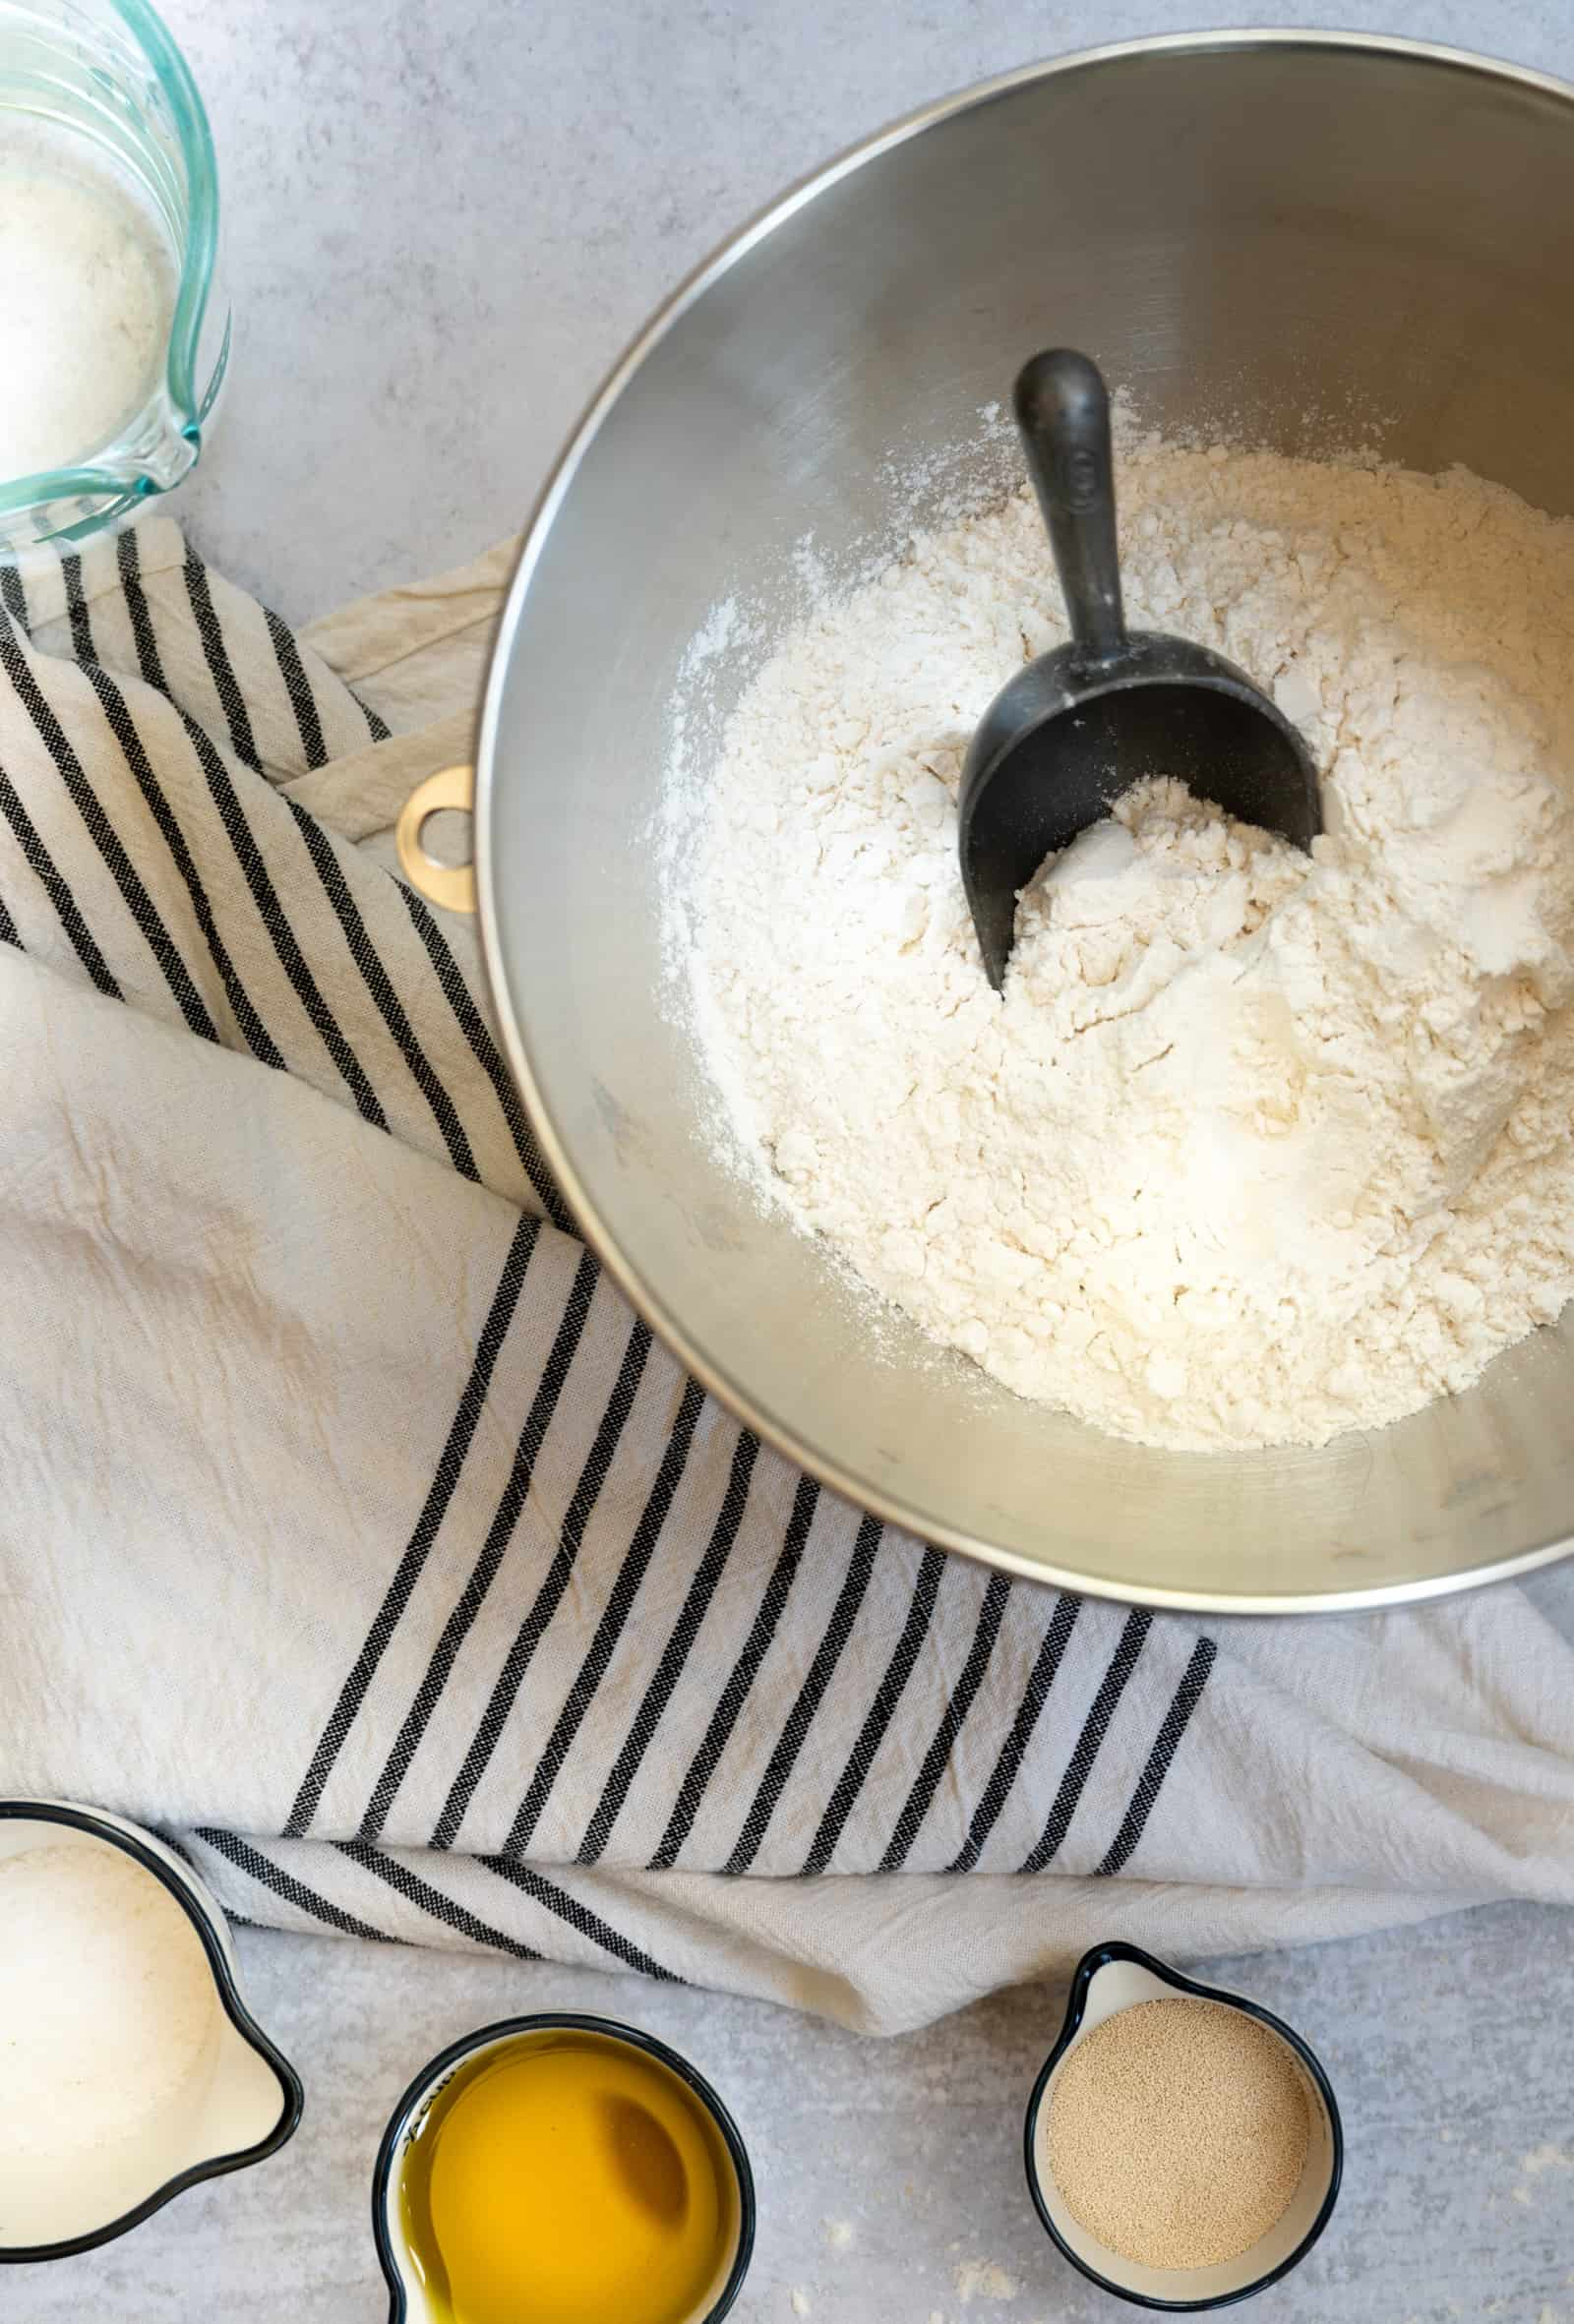 stainless bowl of flour with a metal scoop on a black and white striped dish towel with bowls of oil, yeast and salt